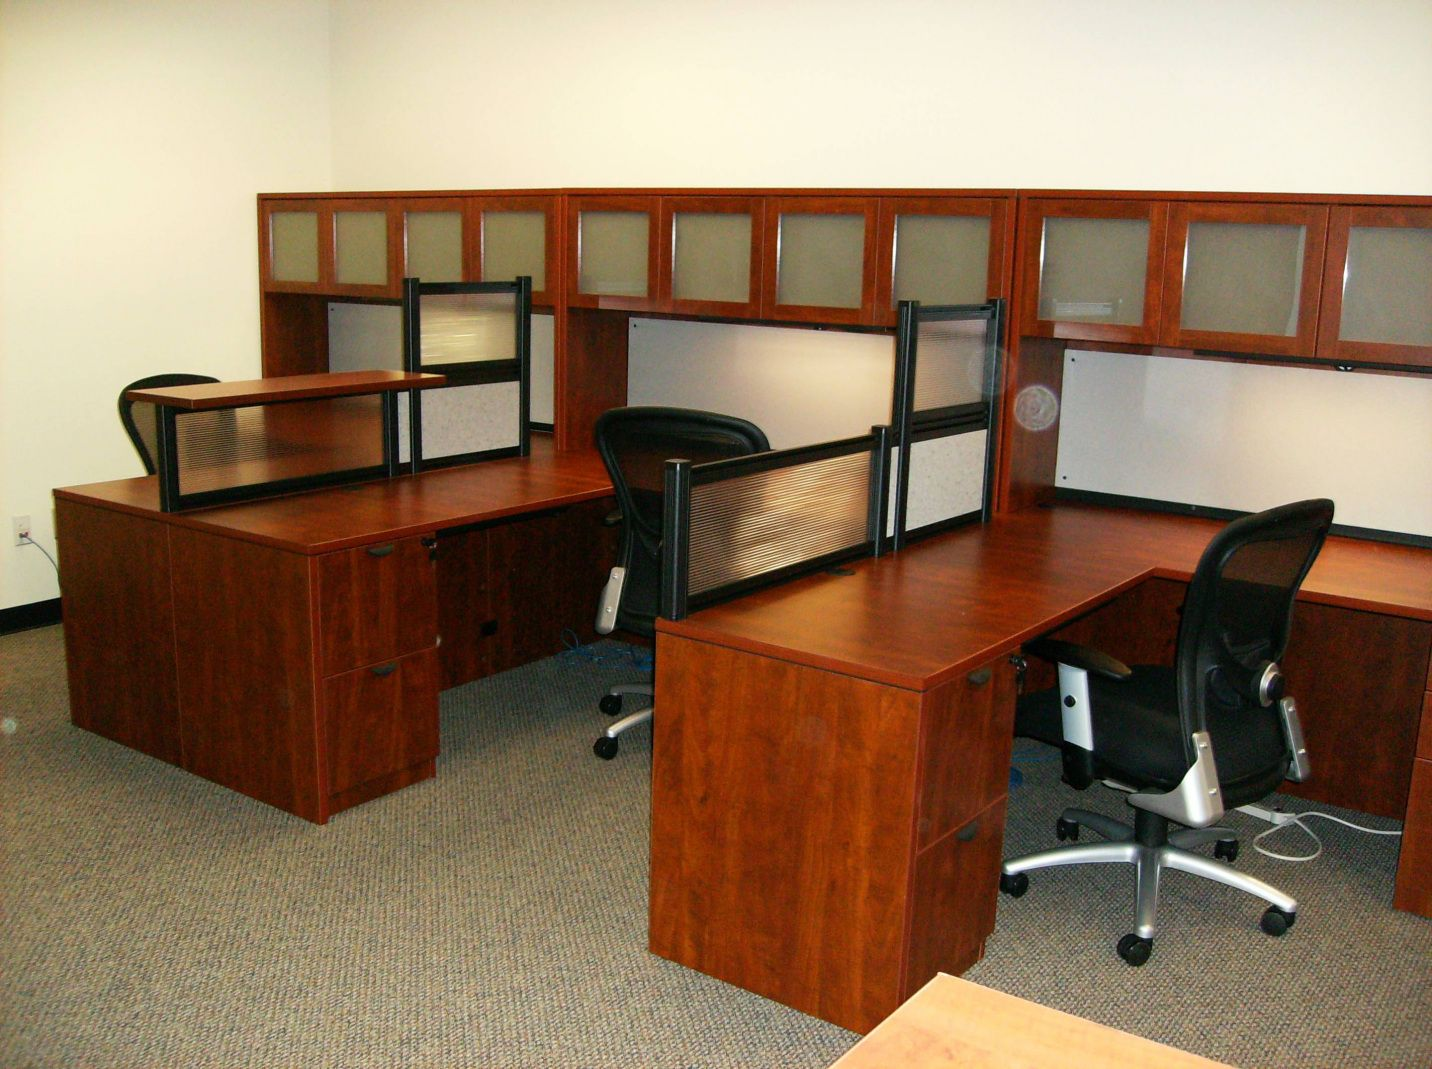 topdeq office furniture. Home Office Furniture Boston - Real Wood Check More At Http:/ Topdeq T